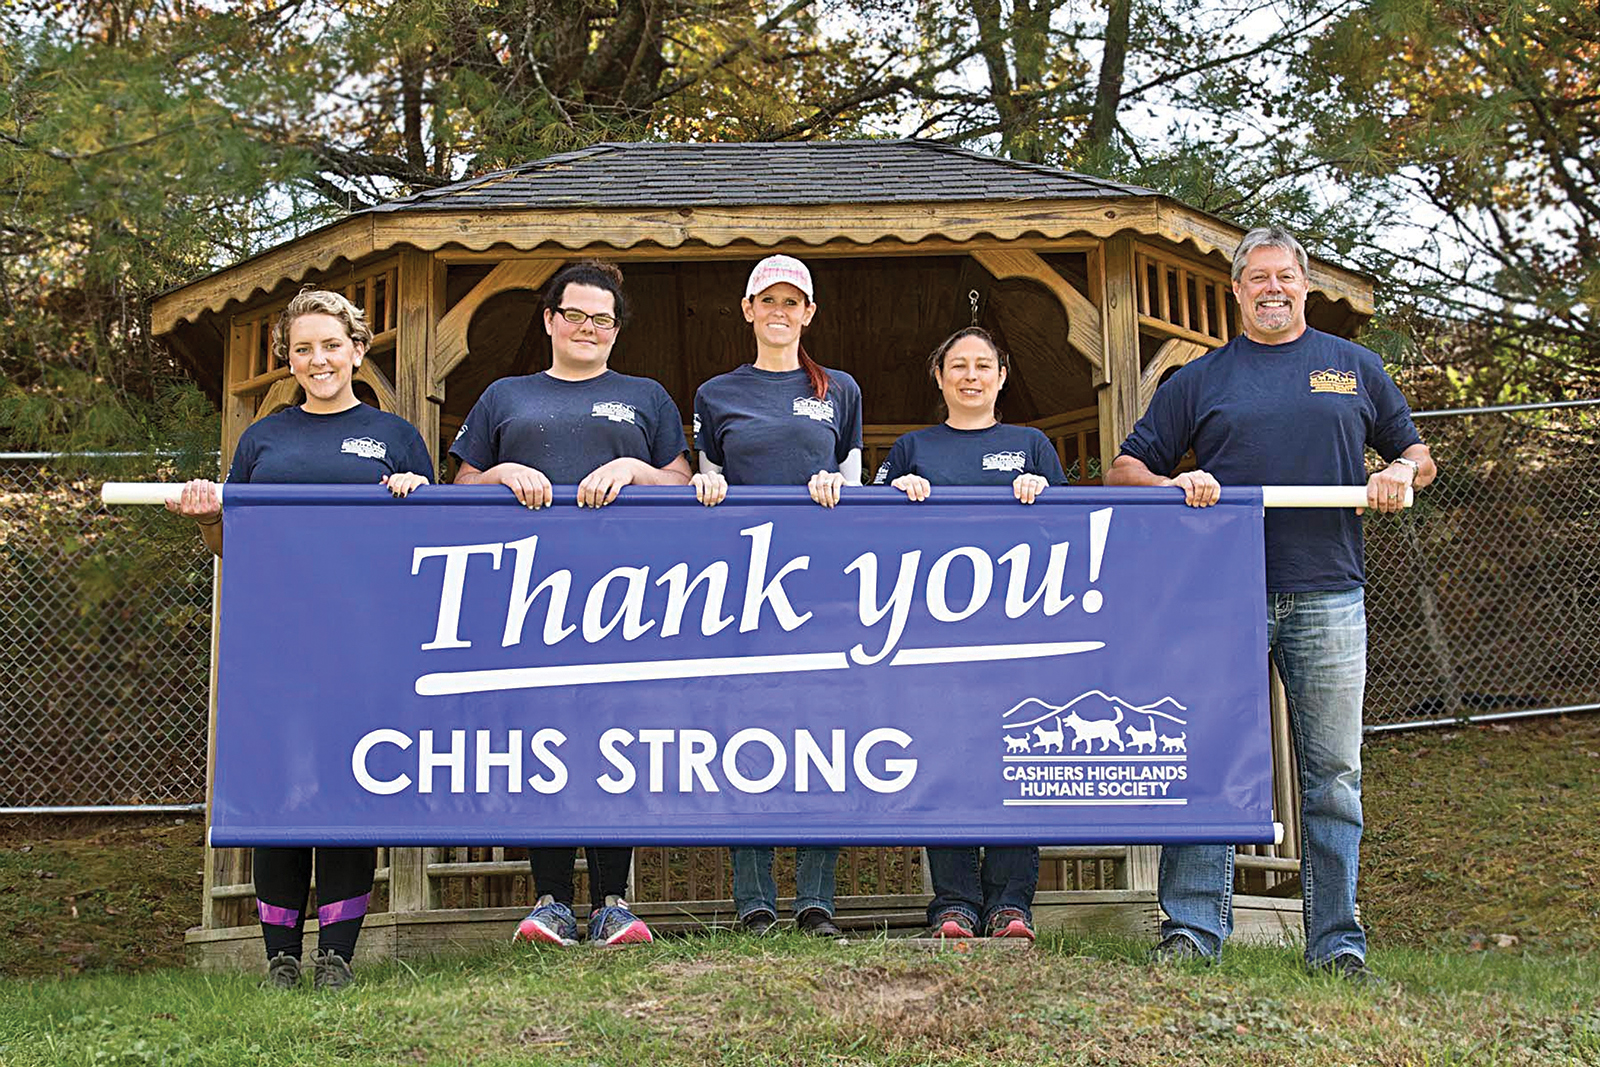 cashiers nc cashiers highlands humane society chhs strong